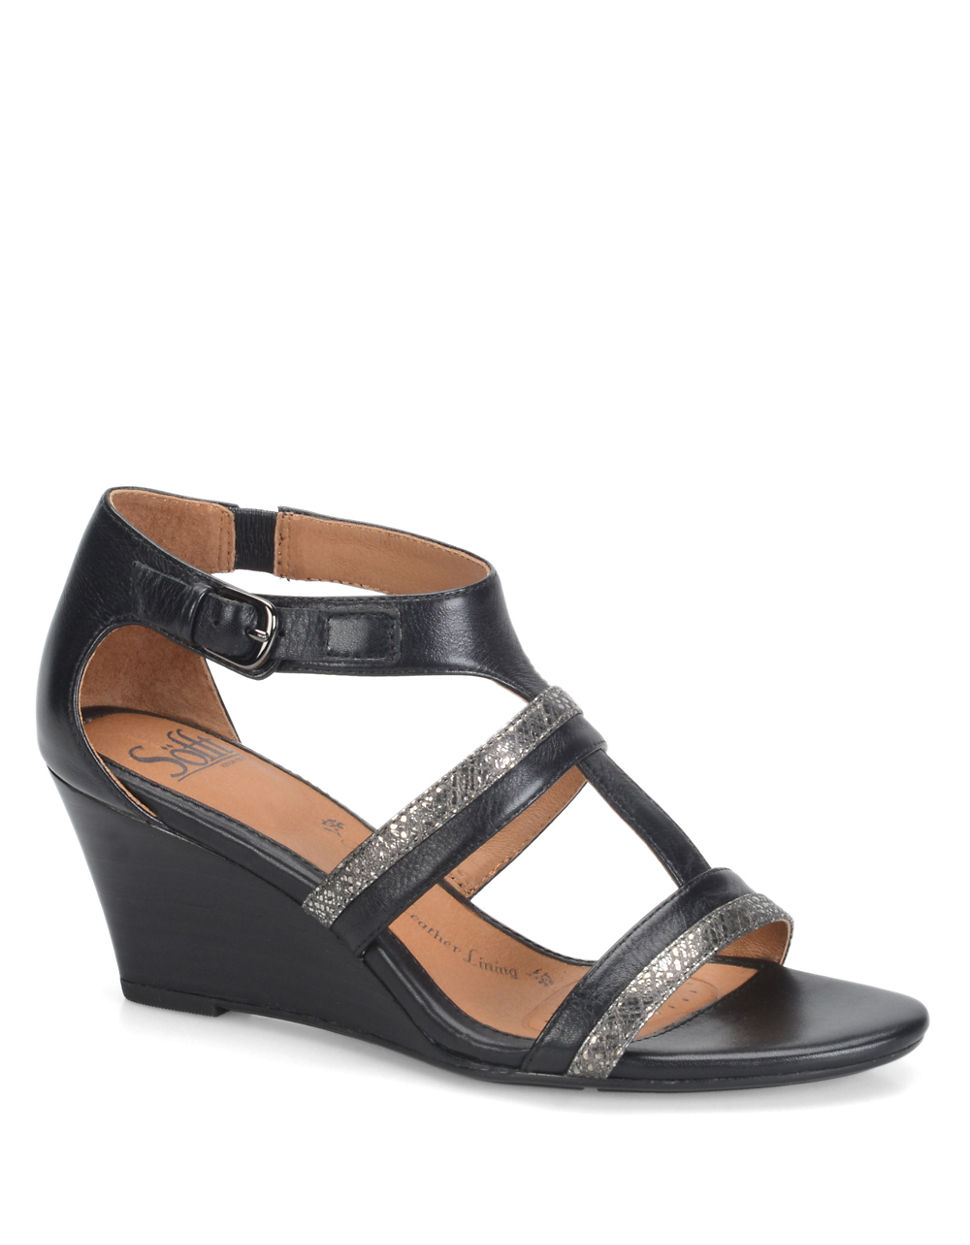 angrydog.ga: black leather wedge sandal. Interesting Finds Updated Daily. Ashuai Cork Sole Thong Wedge Sandals Metallic Faux Leather Heel Sandal. Anne Klein Women's Nanetta Espadrille Wedge Sandal. by Anne Klein. $ - $ $ 41 $ 80 00 Prime. FREE Shipping on eligible orders.